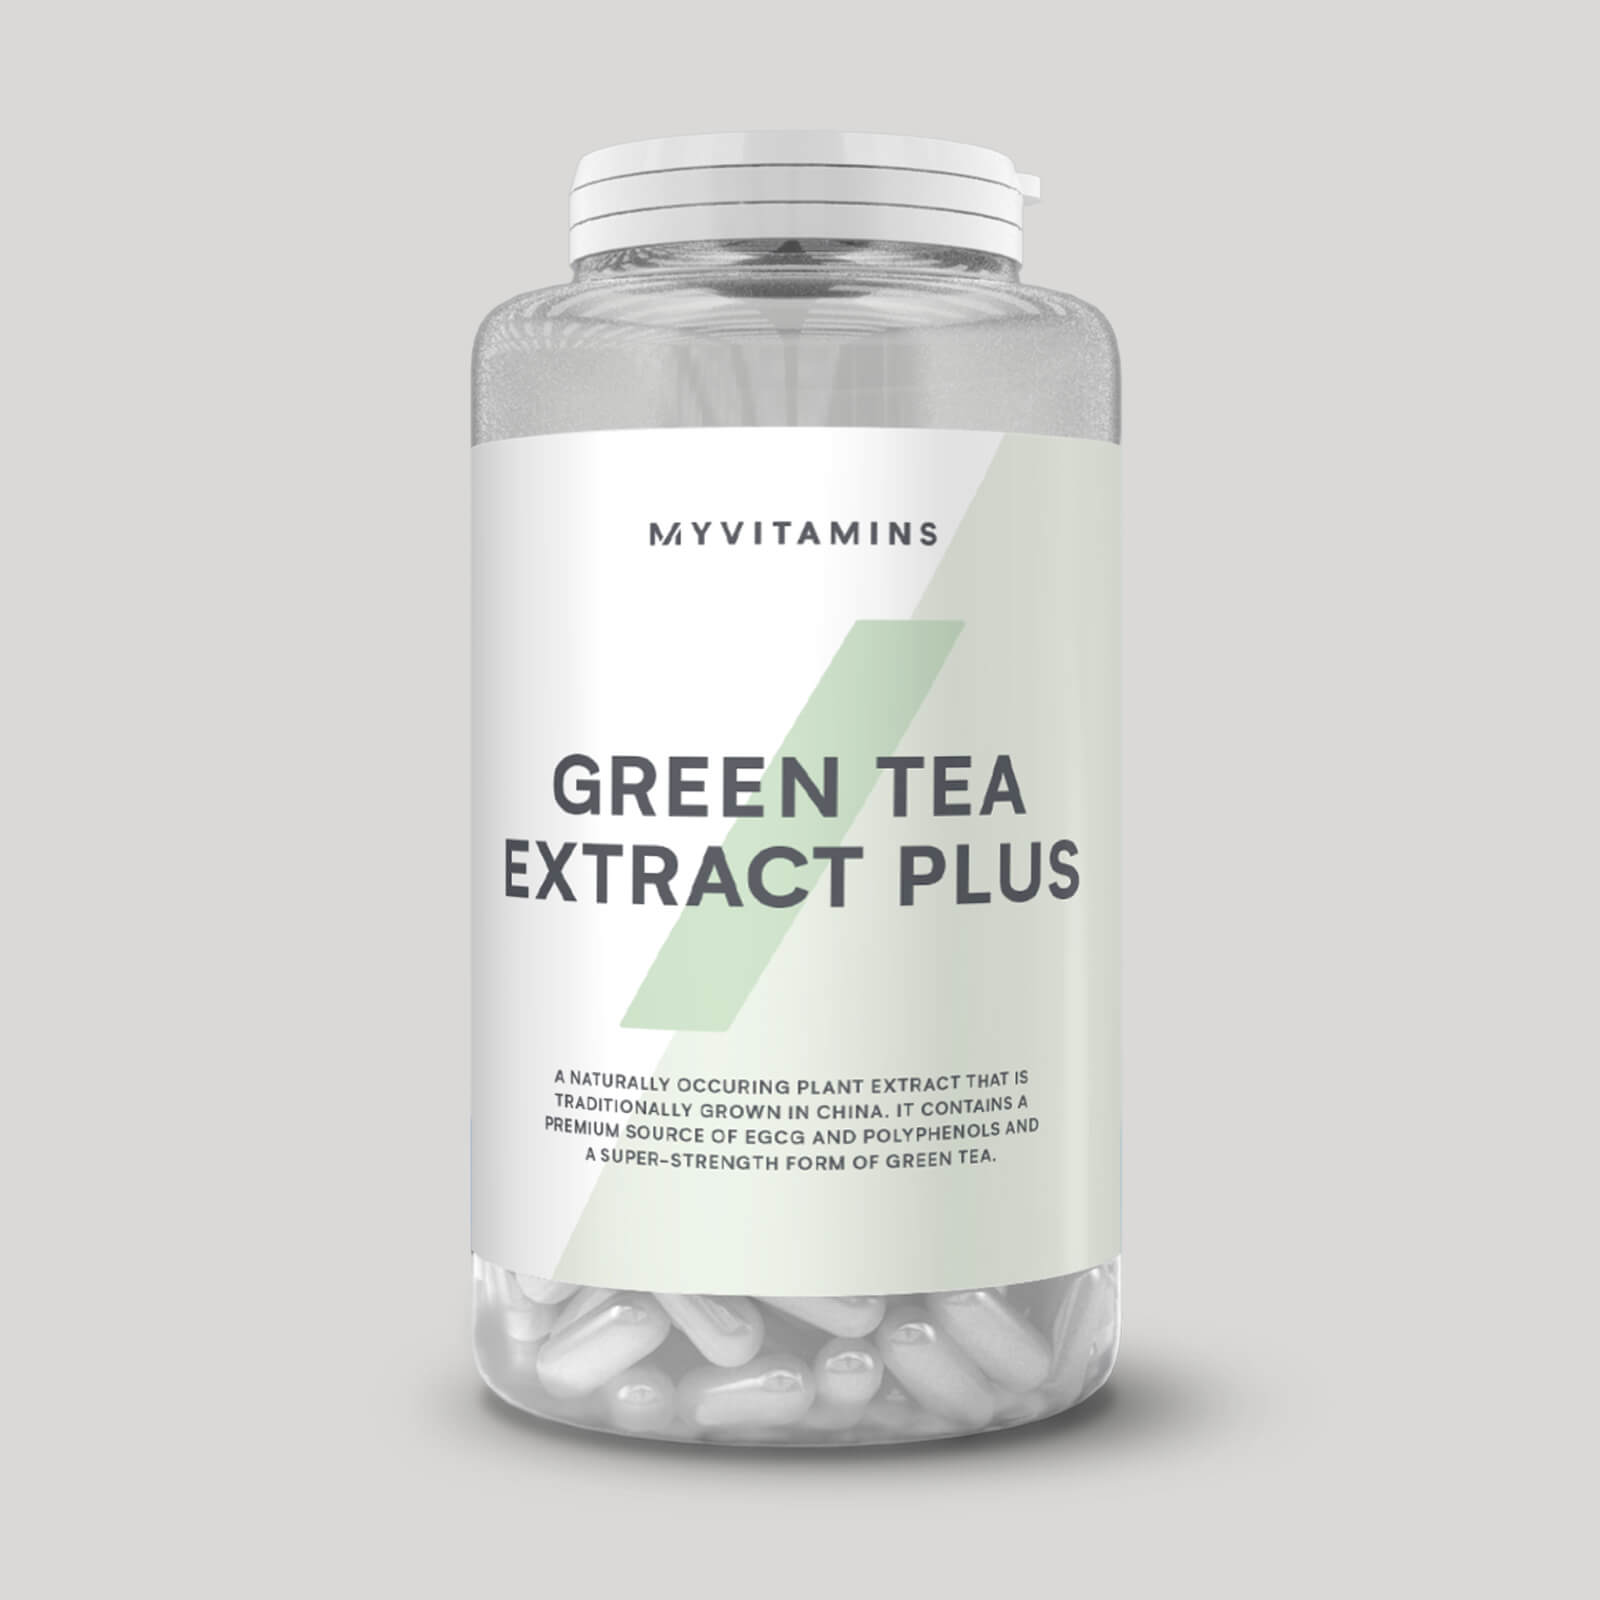 Green Tea Extract Plus